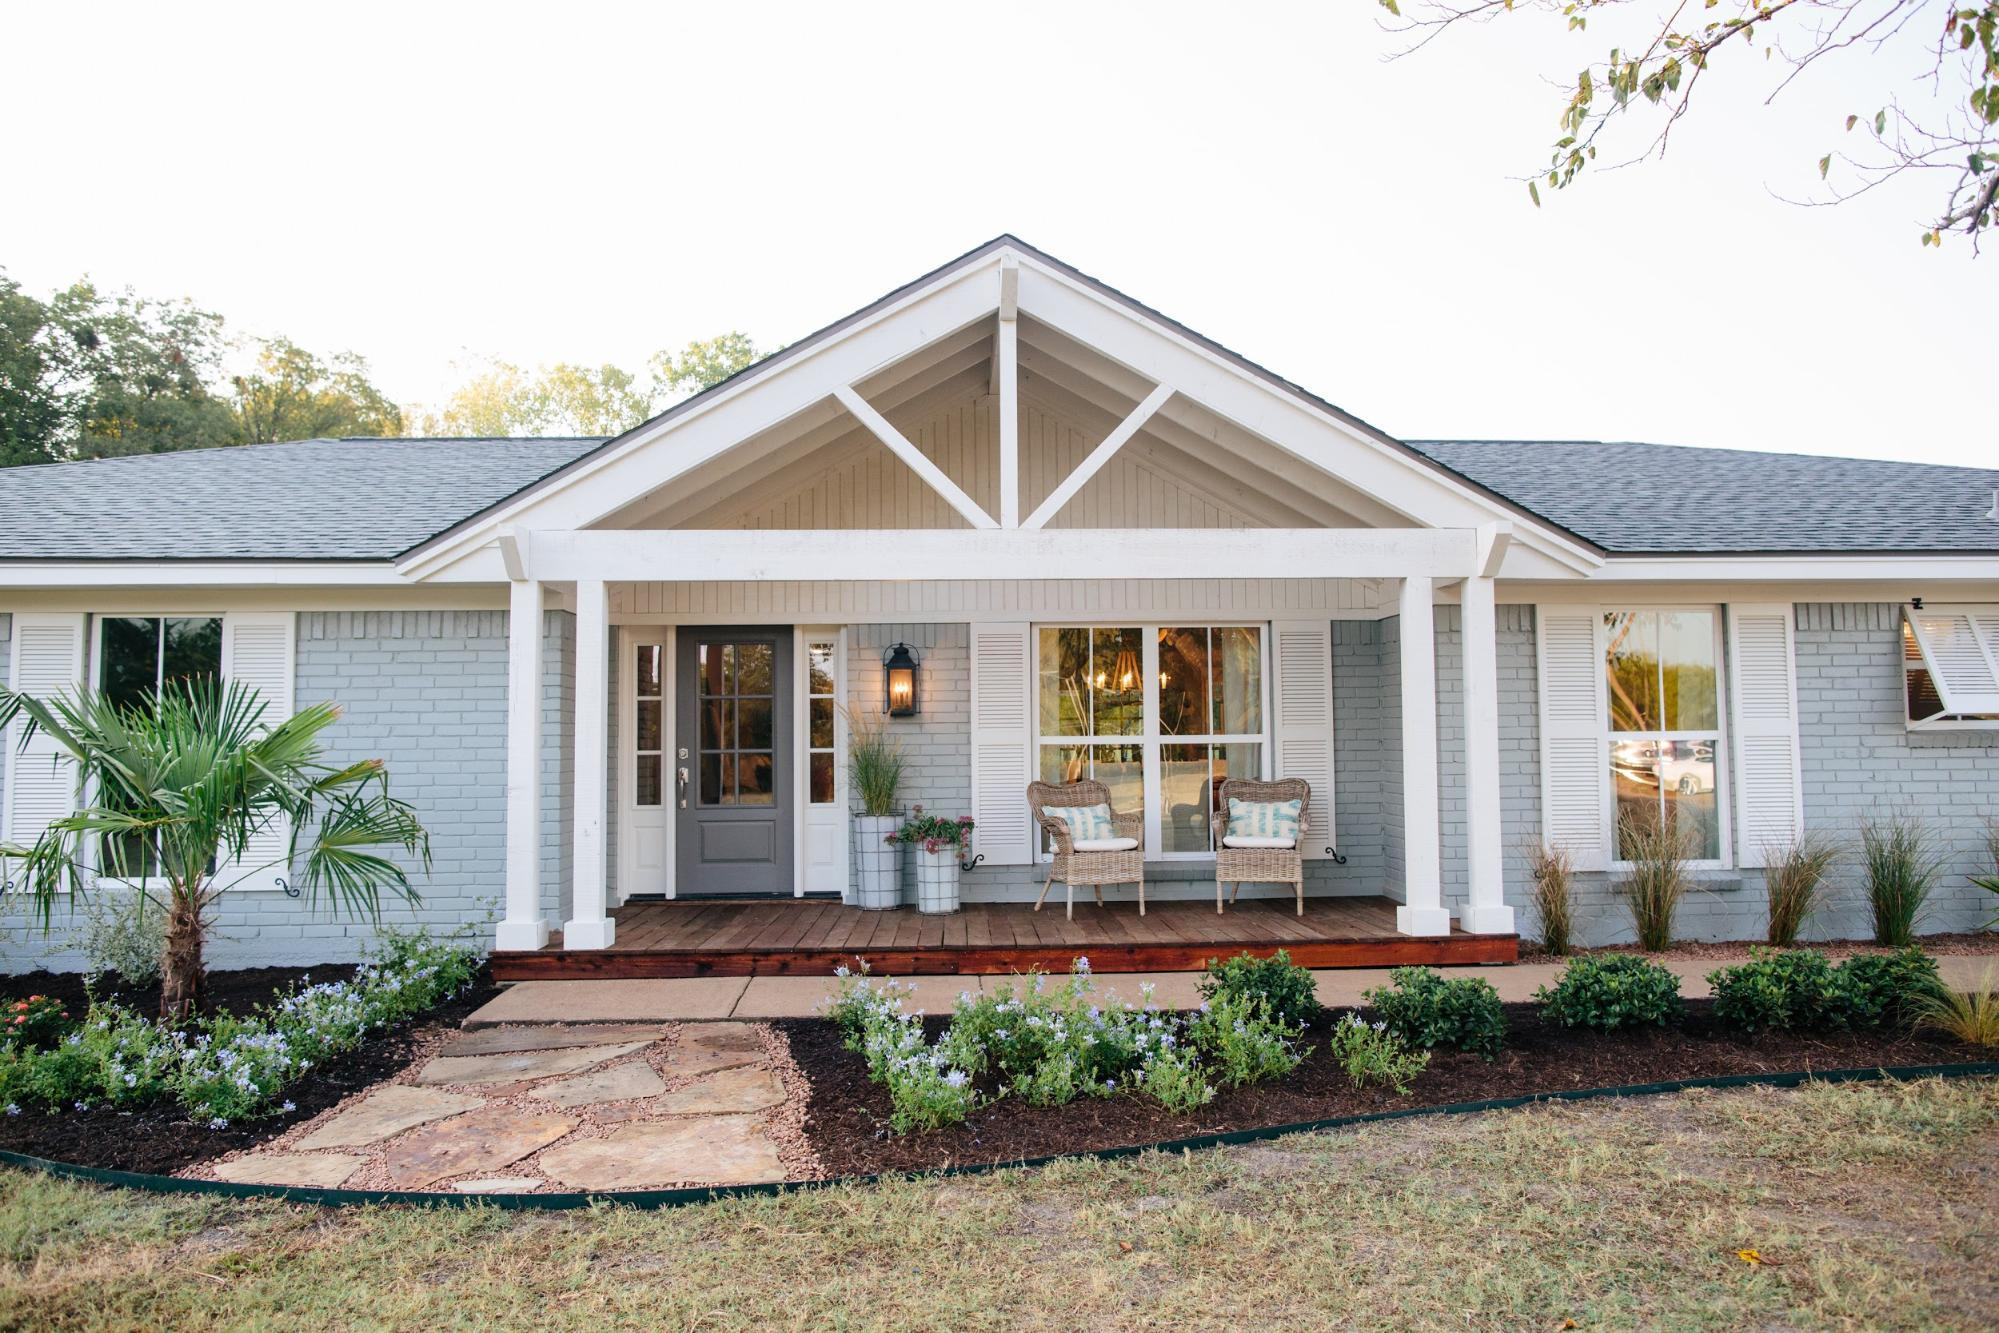 Fixer Upper | Season 3 Episode 13 | The Green Mile House